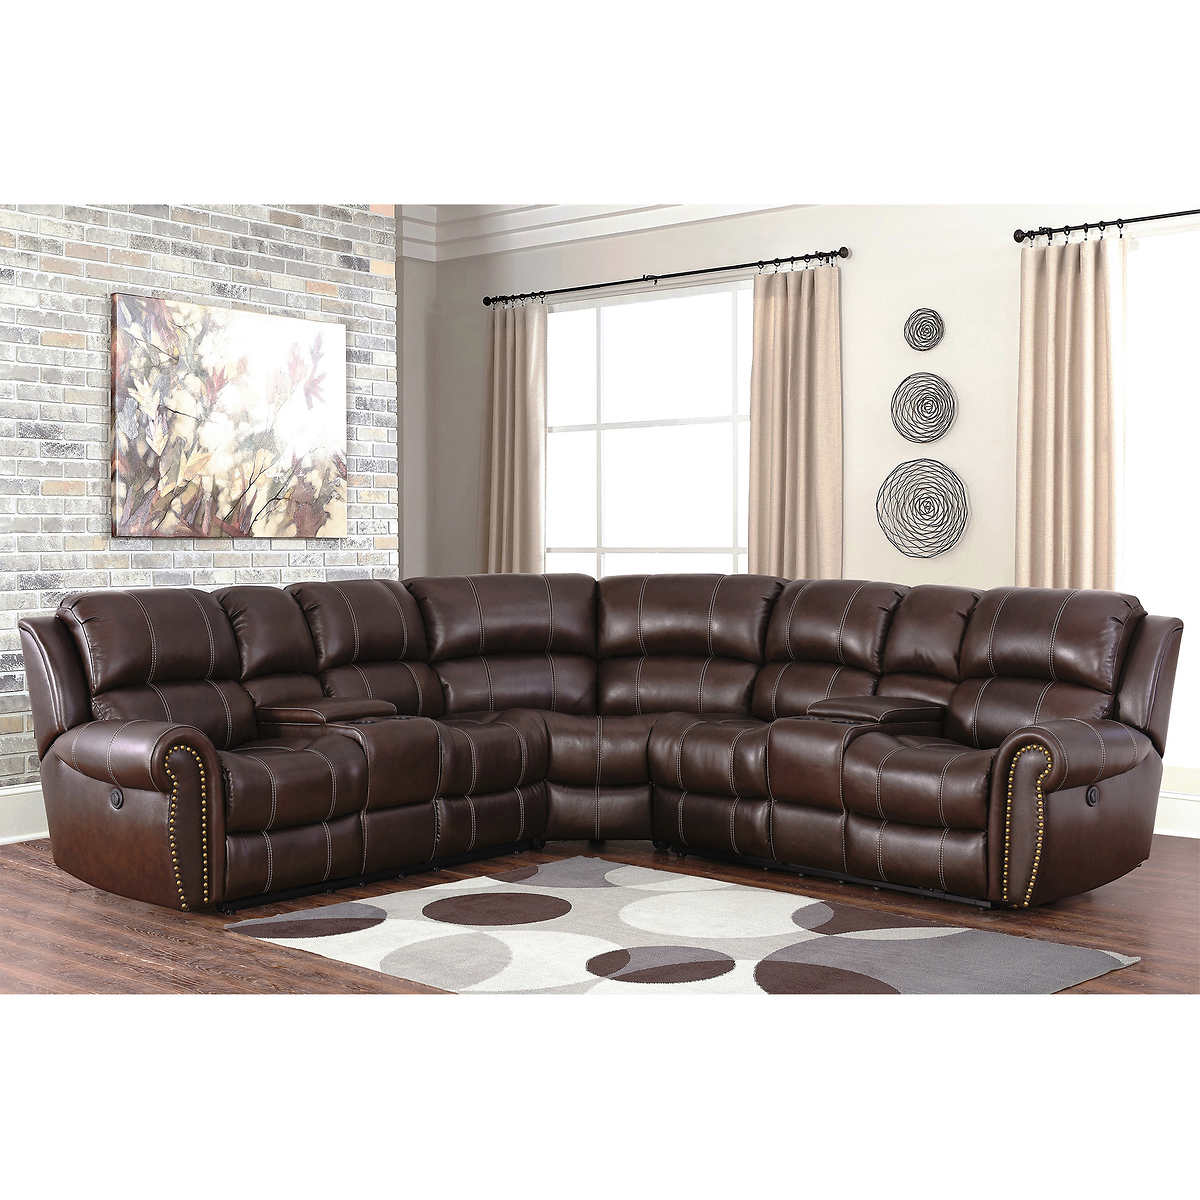 Living Room Sets Leather Recliner Modern House